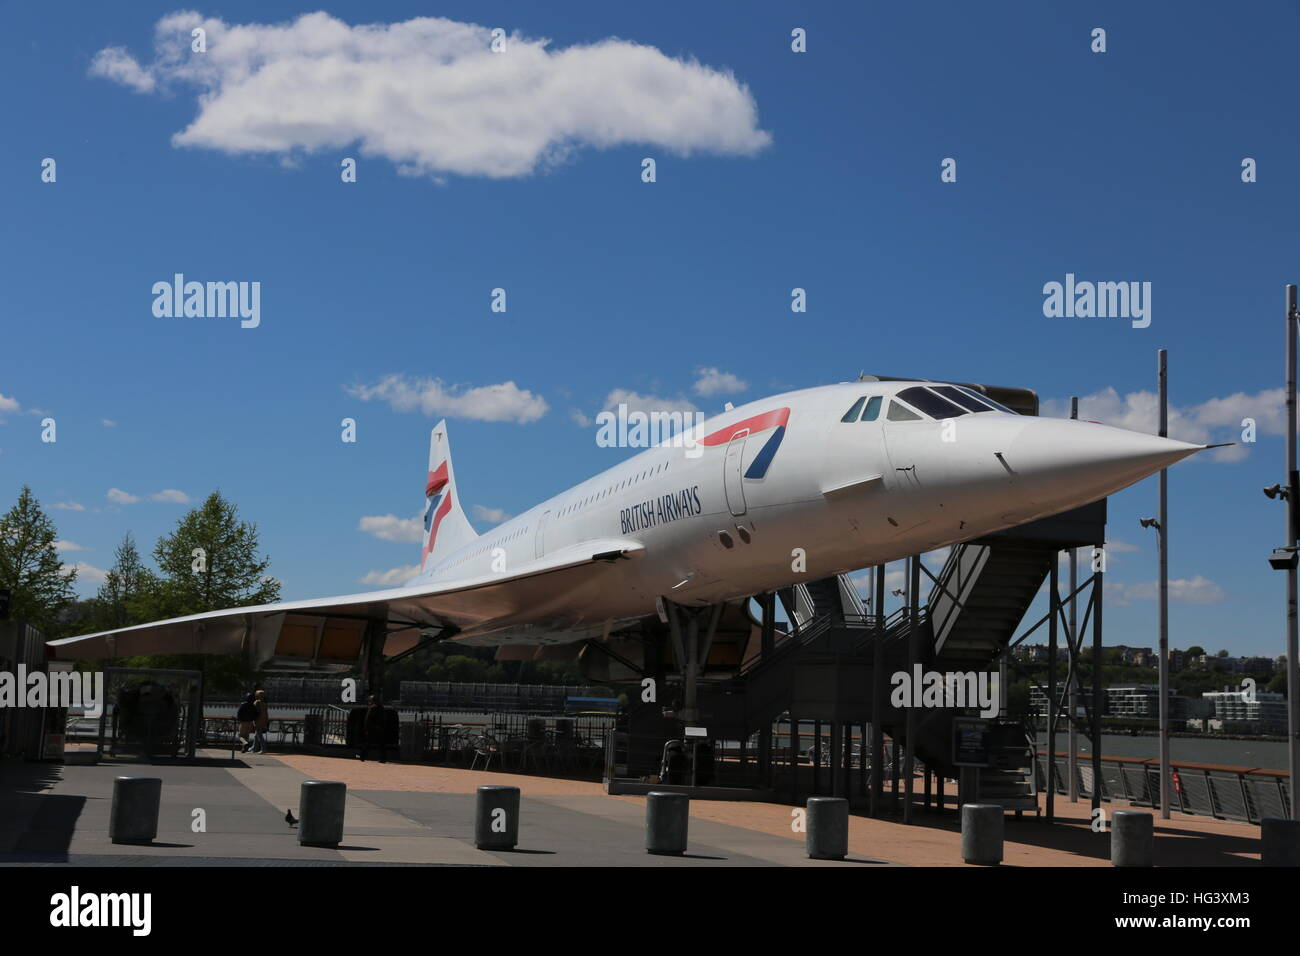 Concorde Supersonic Jet at the USS Intrepid Sea, Air & Space Museum - Stock Image